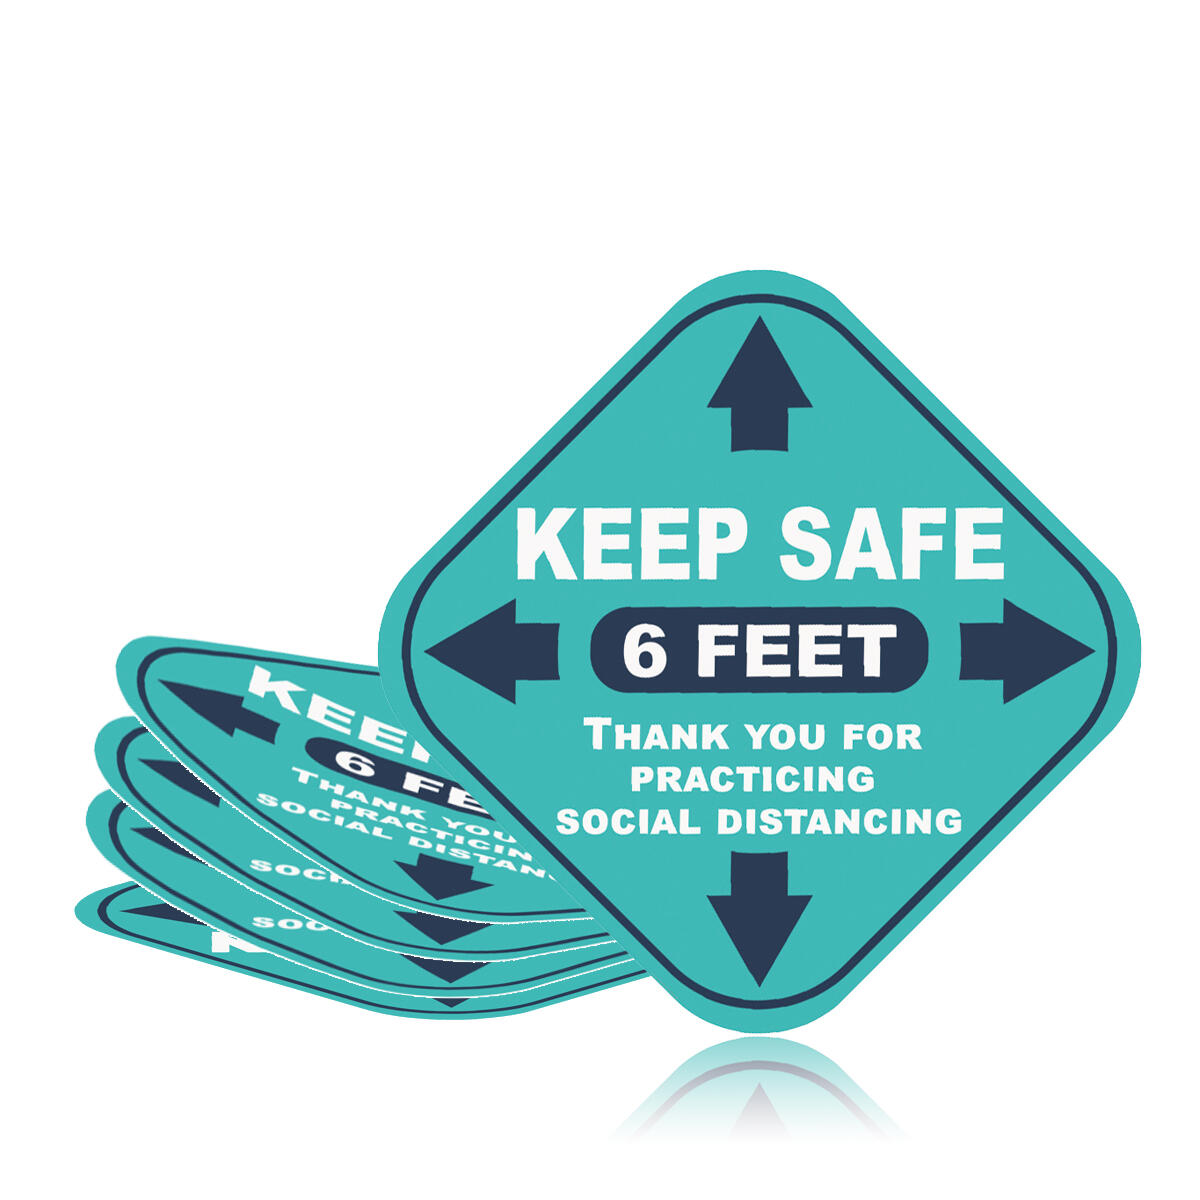 Social Distancing Floor Decals |5 Stickers Signs Crowd Control Safety 6 Feet Apart Signage Stand Here Please Maintain 6ft Distance Removable Vinyl Adhesive Tiles Markers